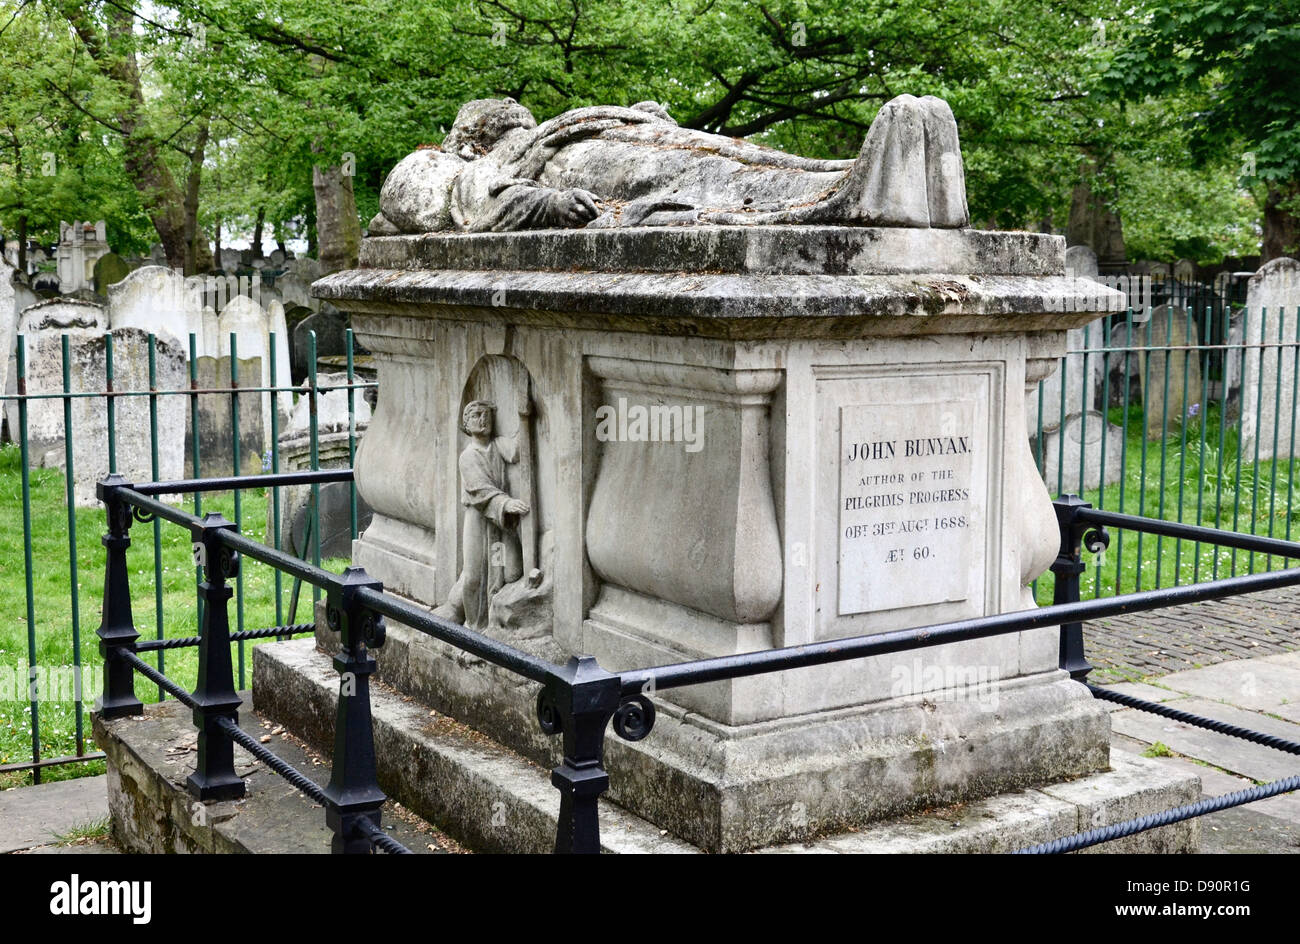 The grave of John Bunyan (1628-1688) in Bunhill Fields Burial ground, Islington, London. - Stock Image